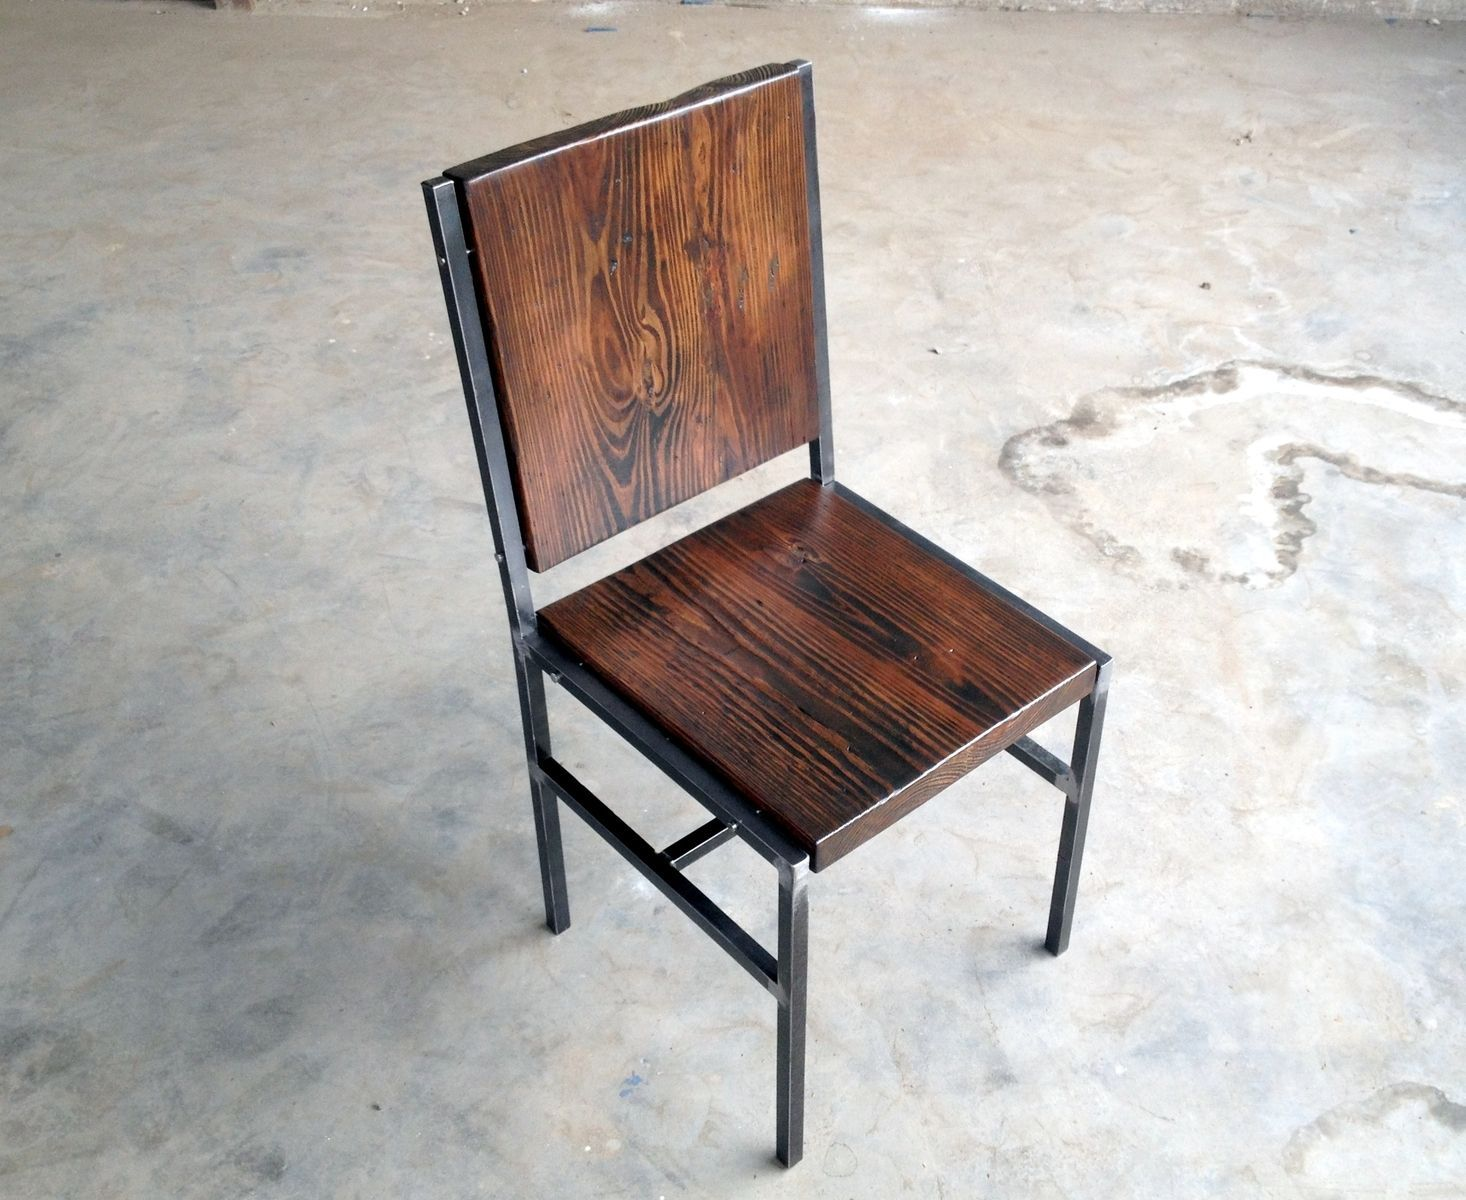 Future chairs for tasting room Custom Made Chair/ Stool Made Of Reclaimed  Wood And Steel - Future Chairs For Tasting Room Custom Made Chair/ Stool Made Of